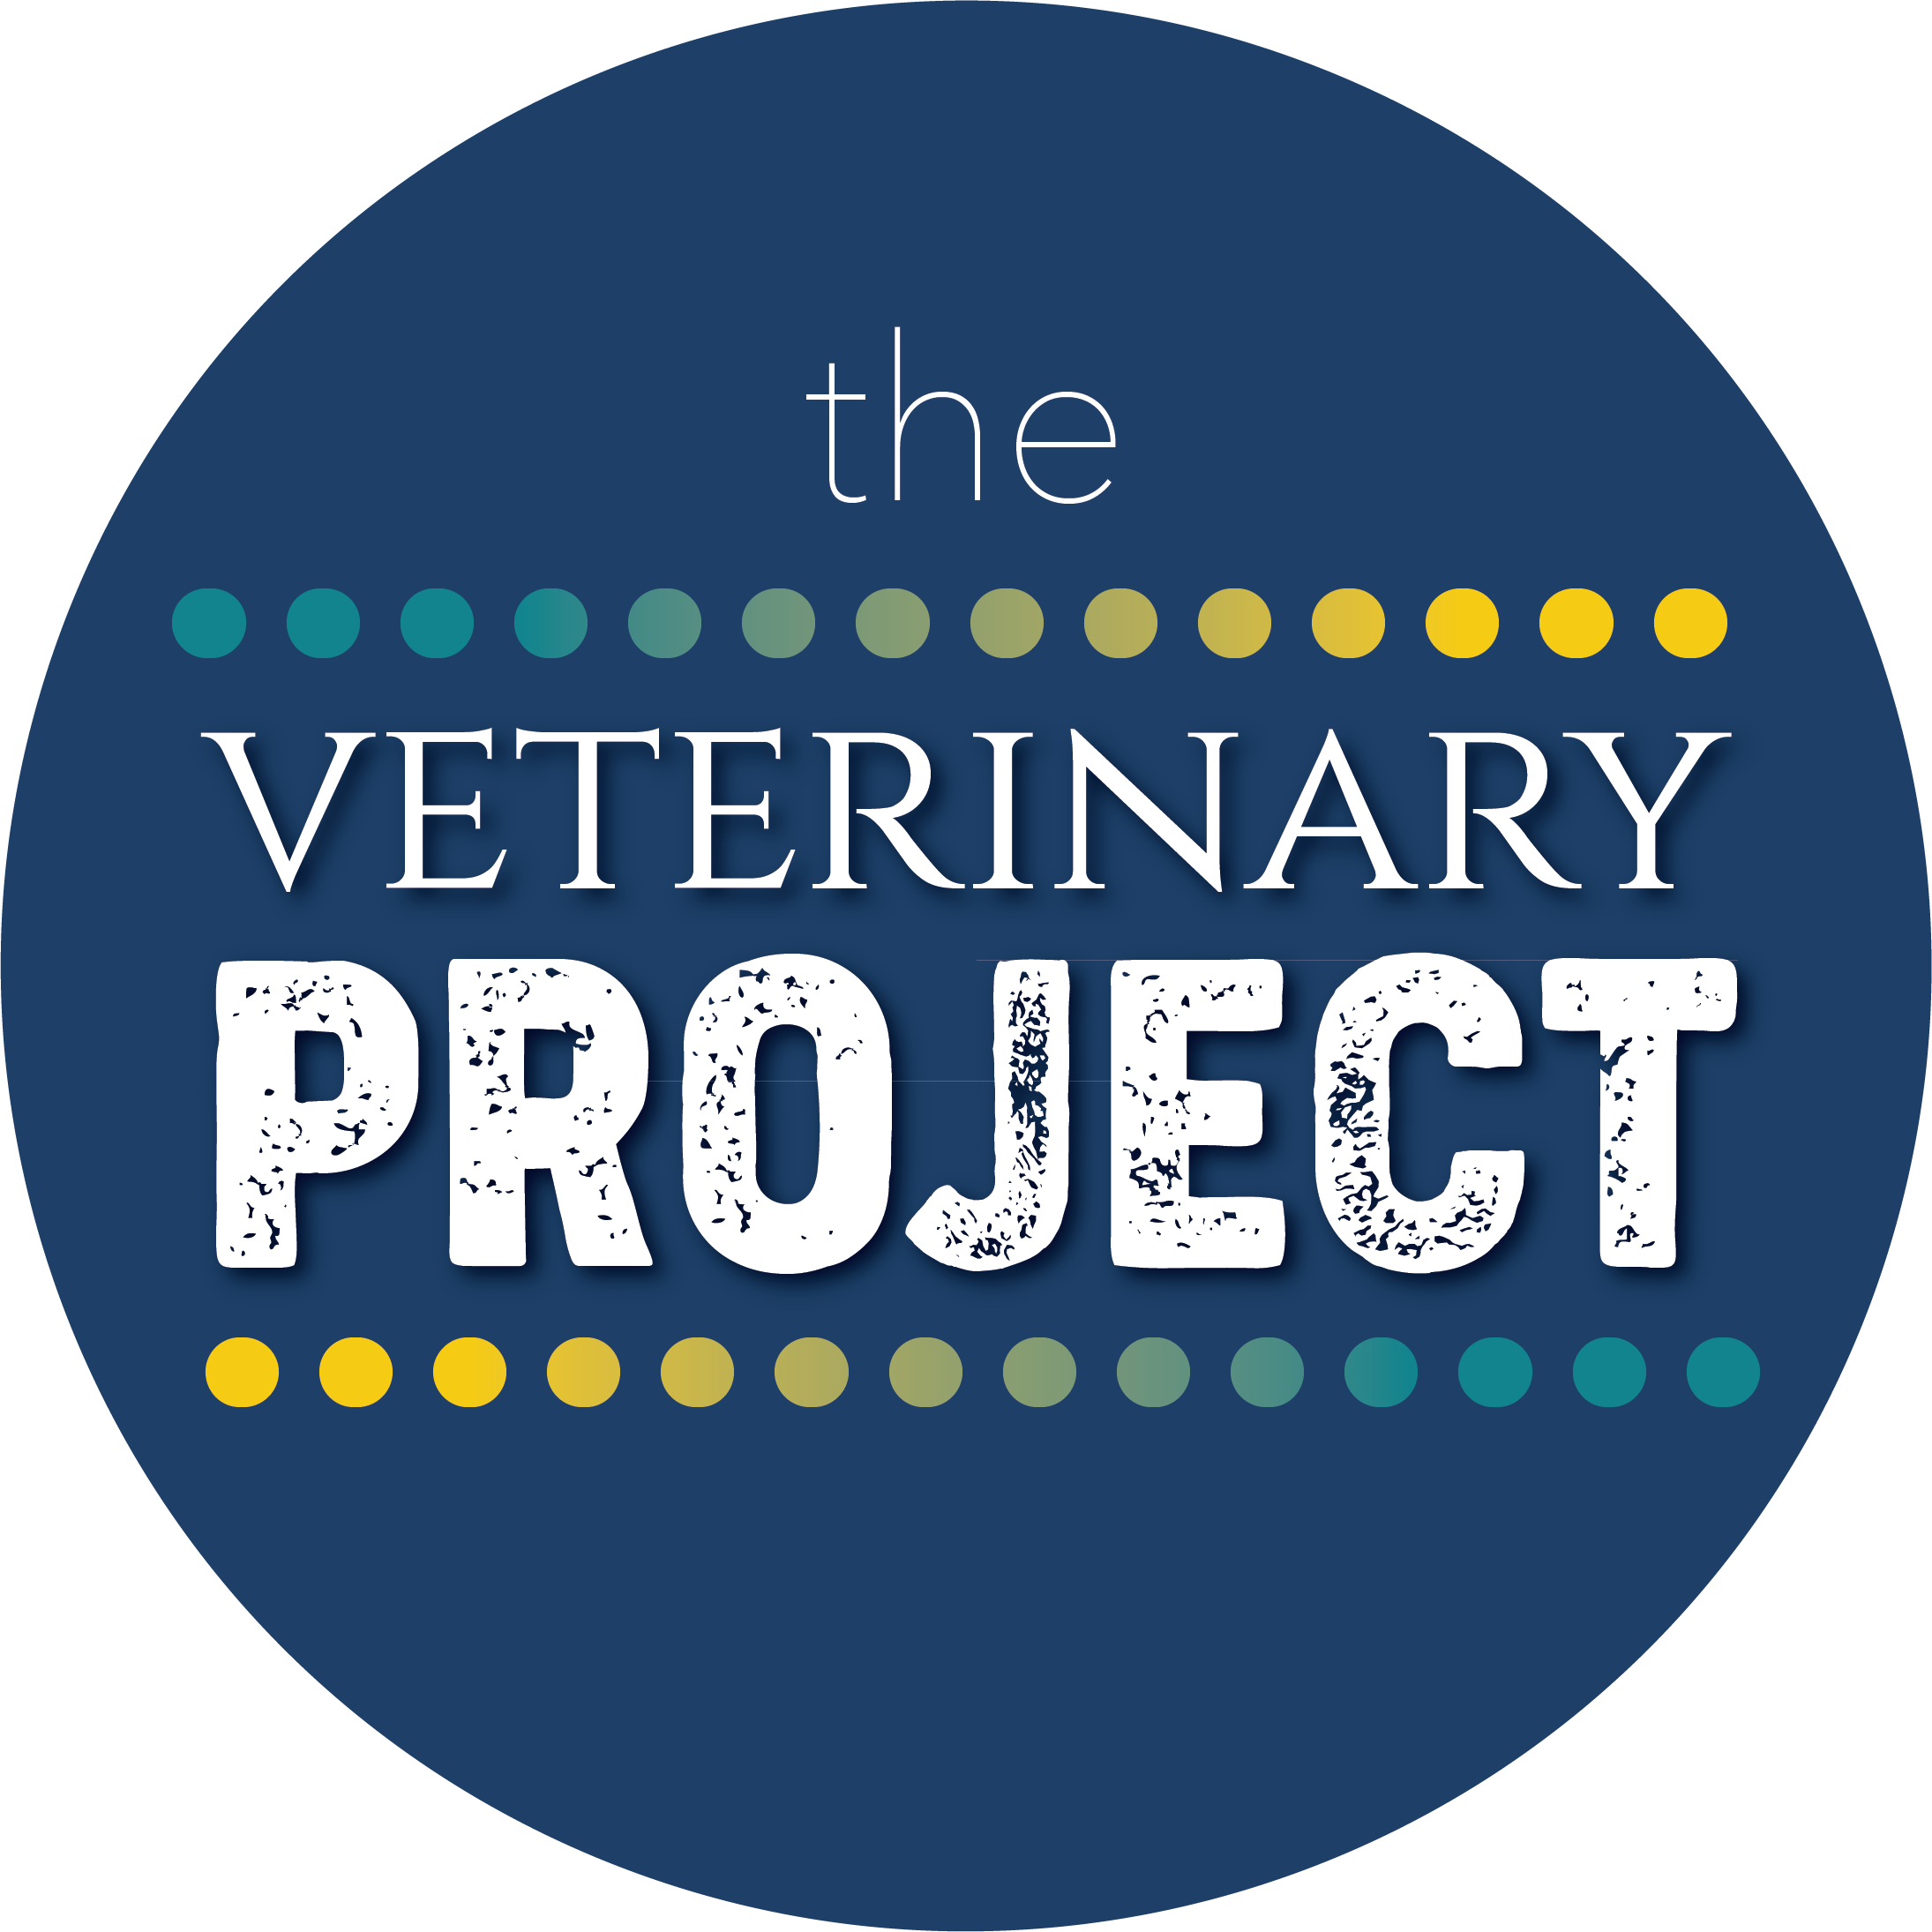 The Veterinary Project